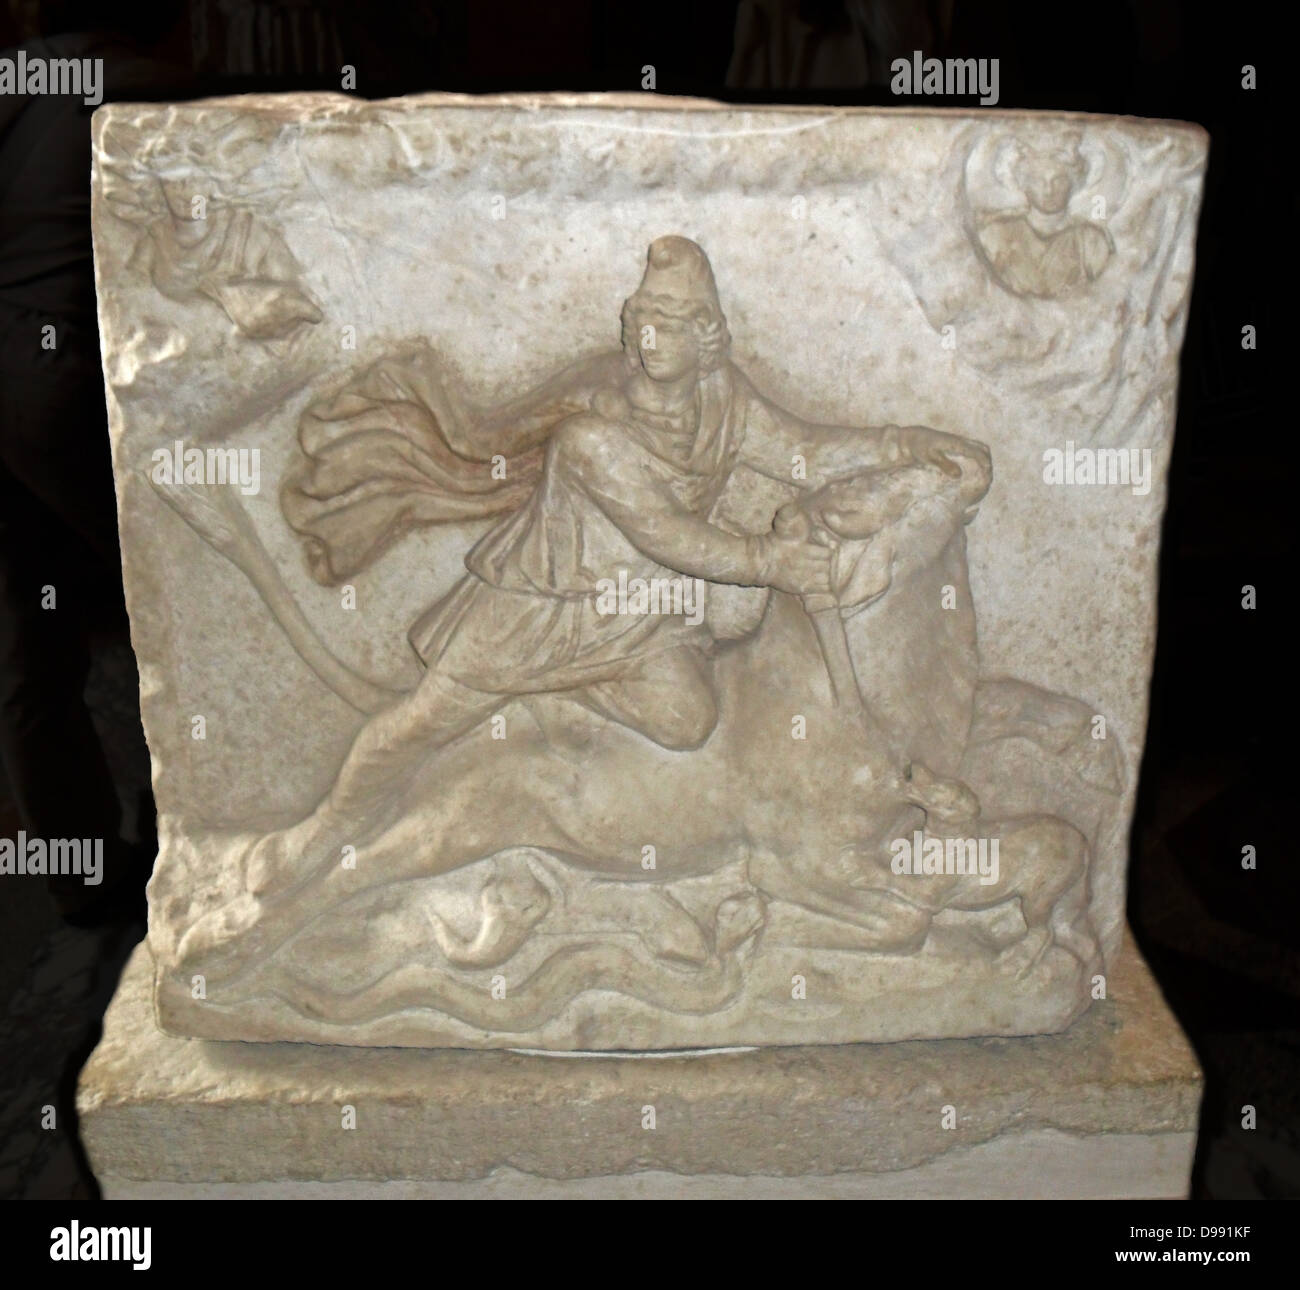 Relief with two sides depicting the Iranian (Persian) god Mithras. Mithras was worshiped in ancient Rome from the - Stock Image